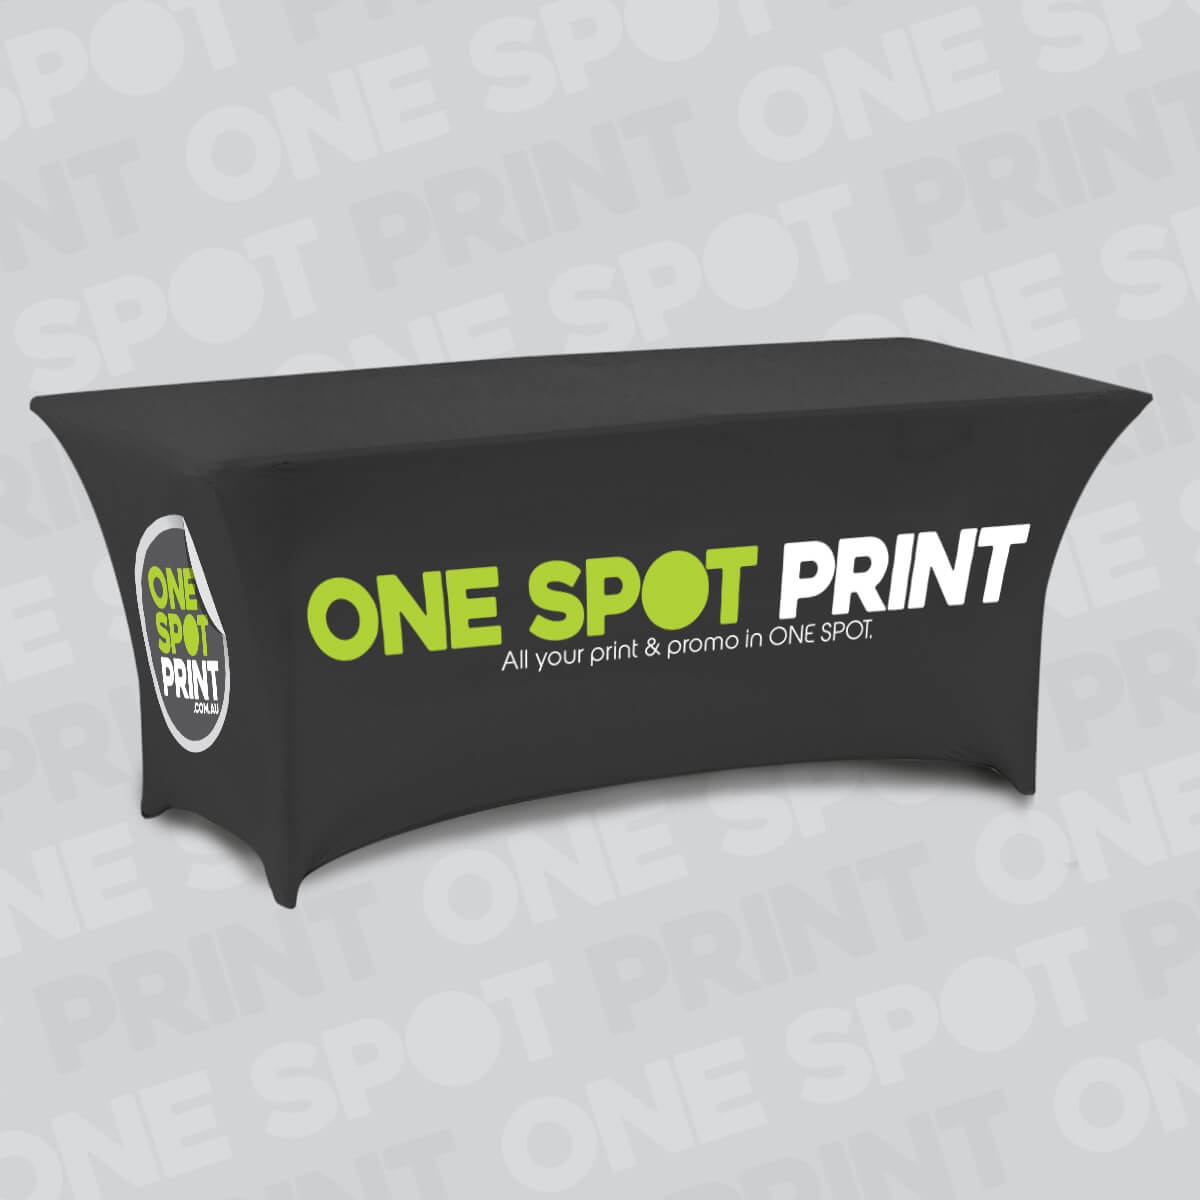 Table Throws (Stretch Tension) - One Spot Print 4f94198465354